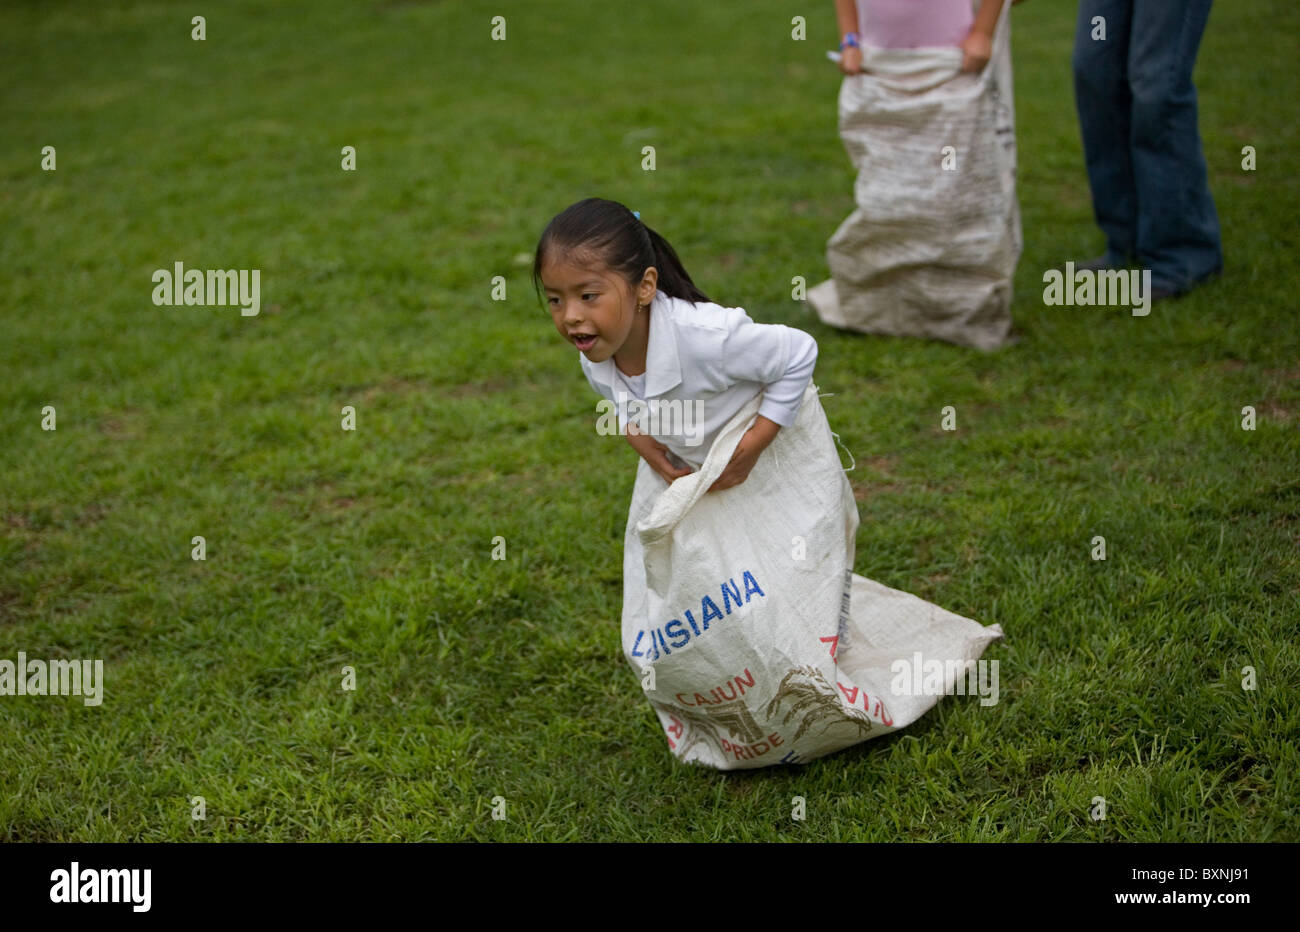 A girl participates in a running sack race during summer camp at a horse therapy center in Mexico City, July 29, Stock Photo